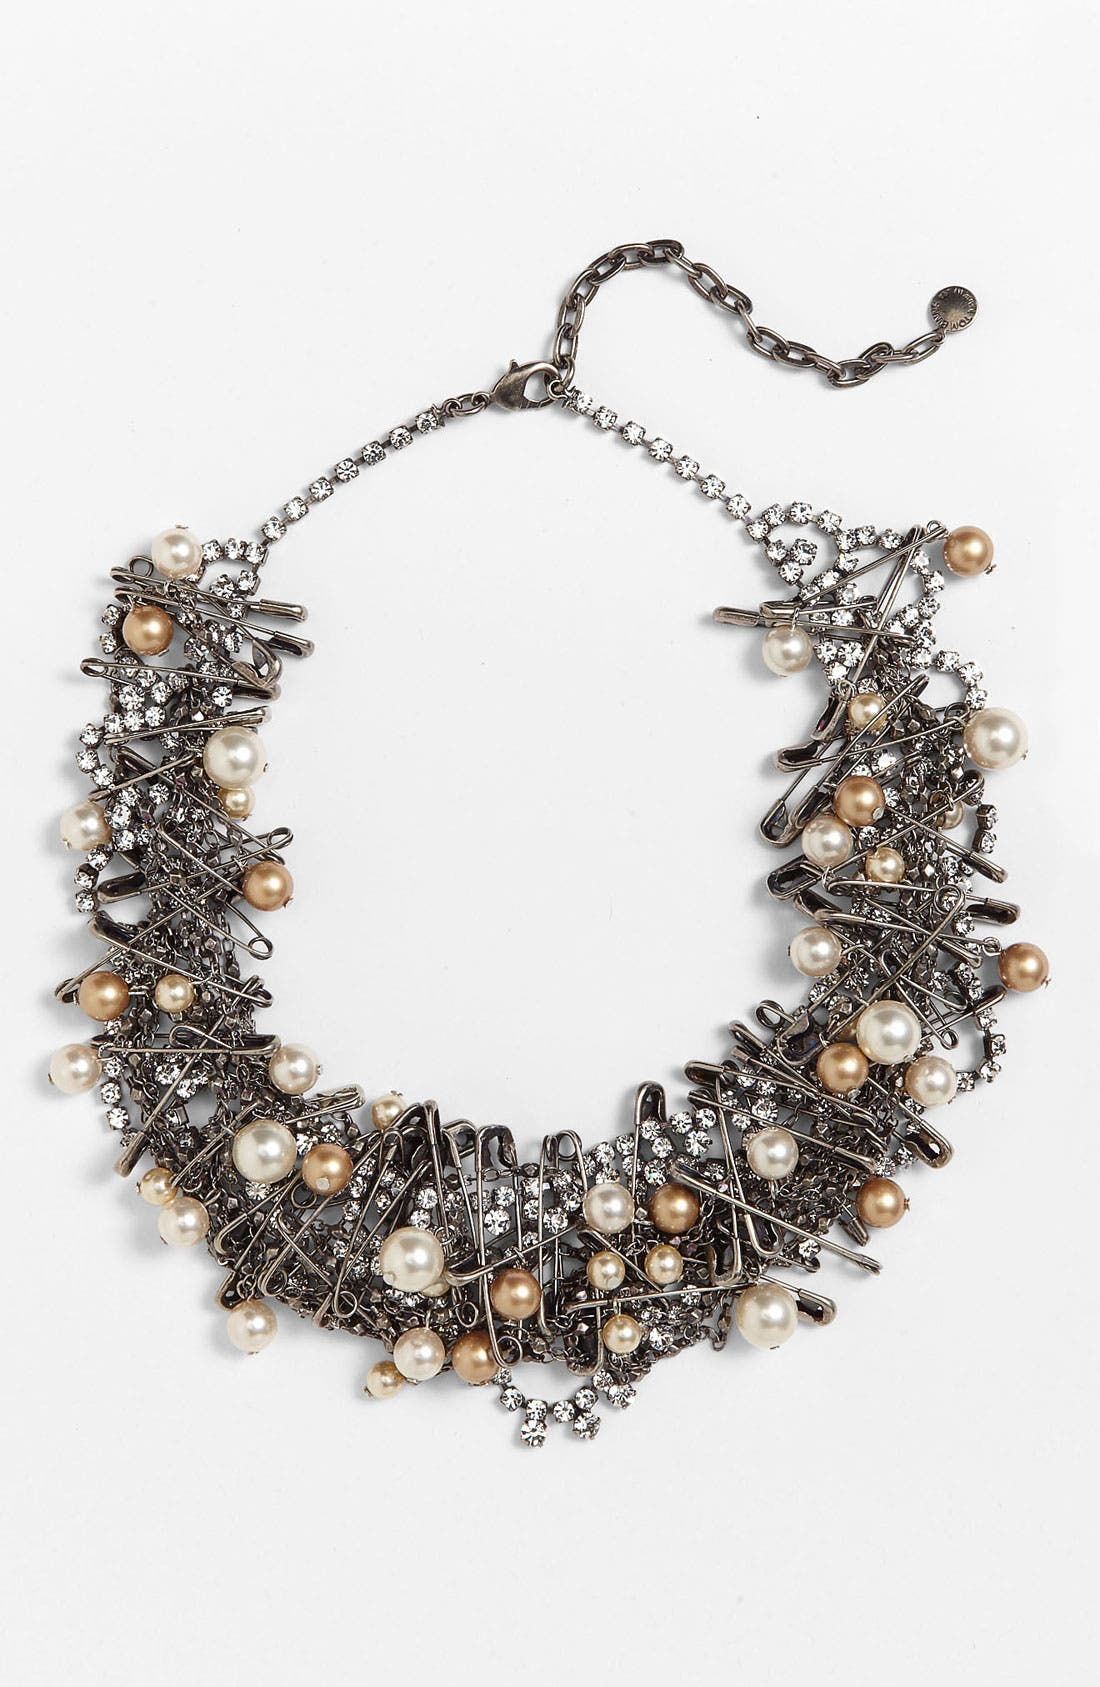 Alternate Image 1 Selected - Tom Binns 'Punk Chic Pearls' Statement Necklace